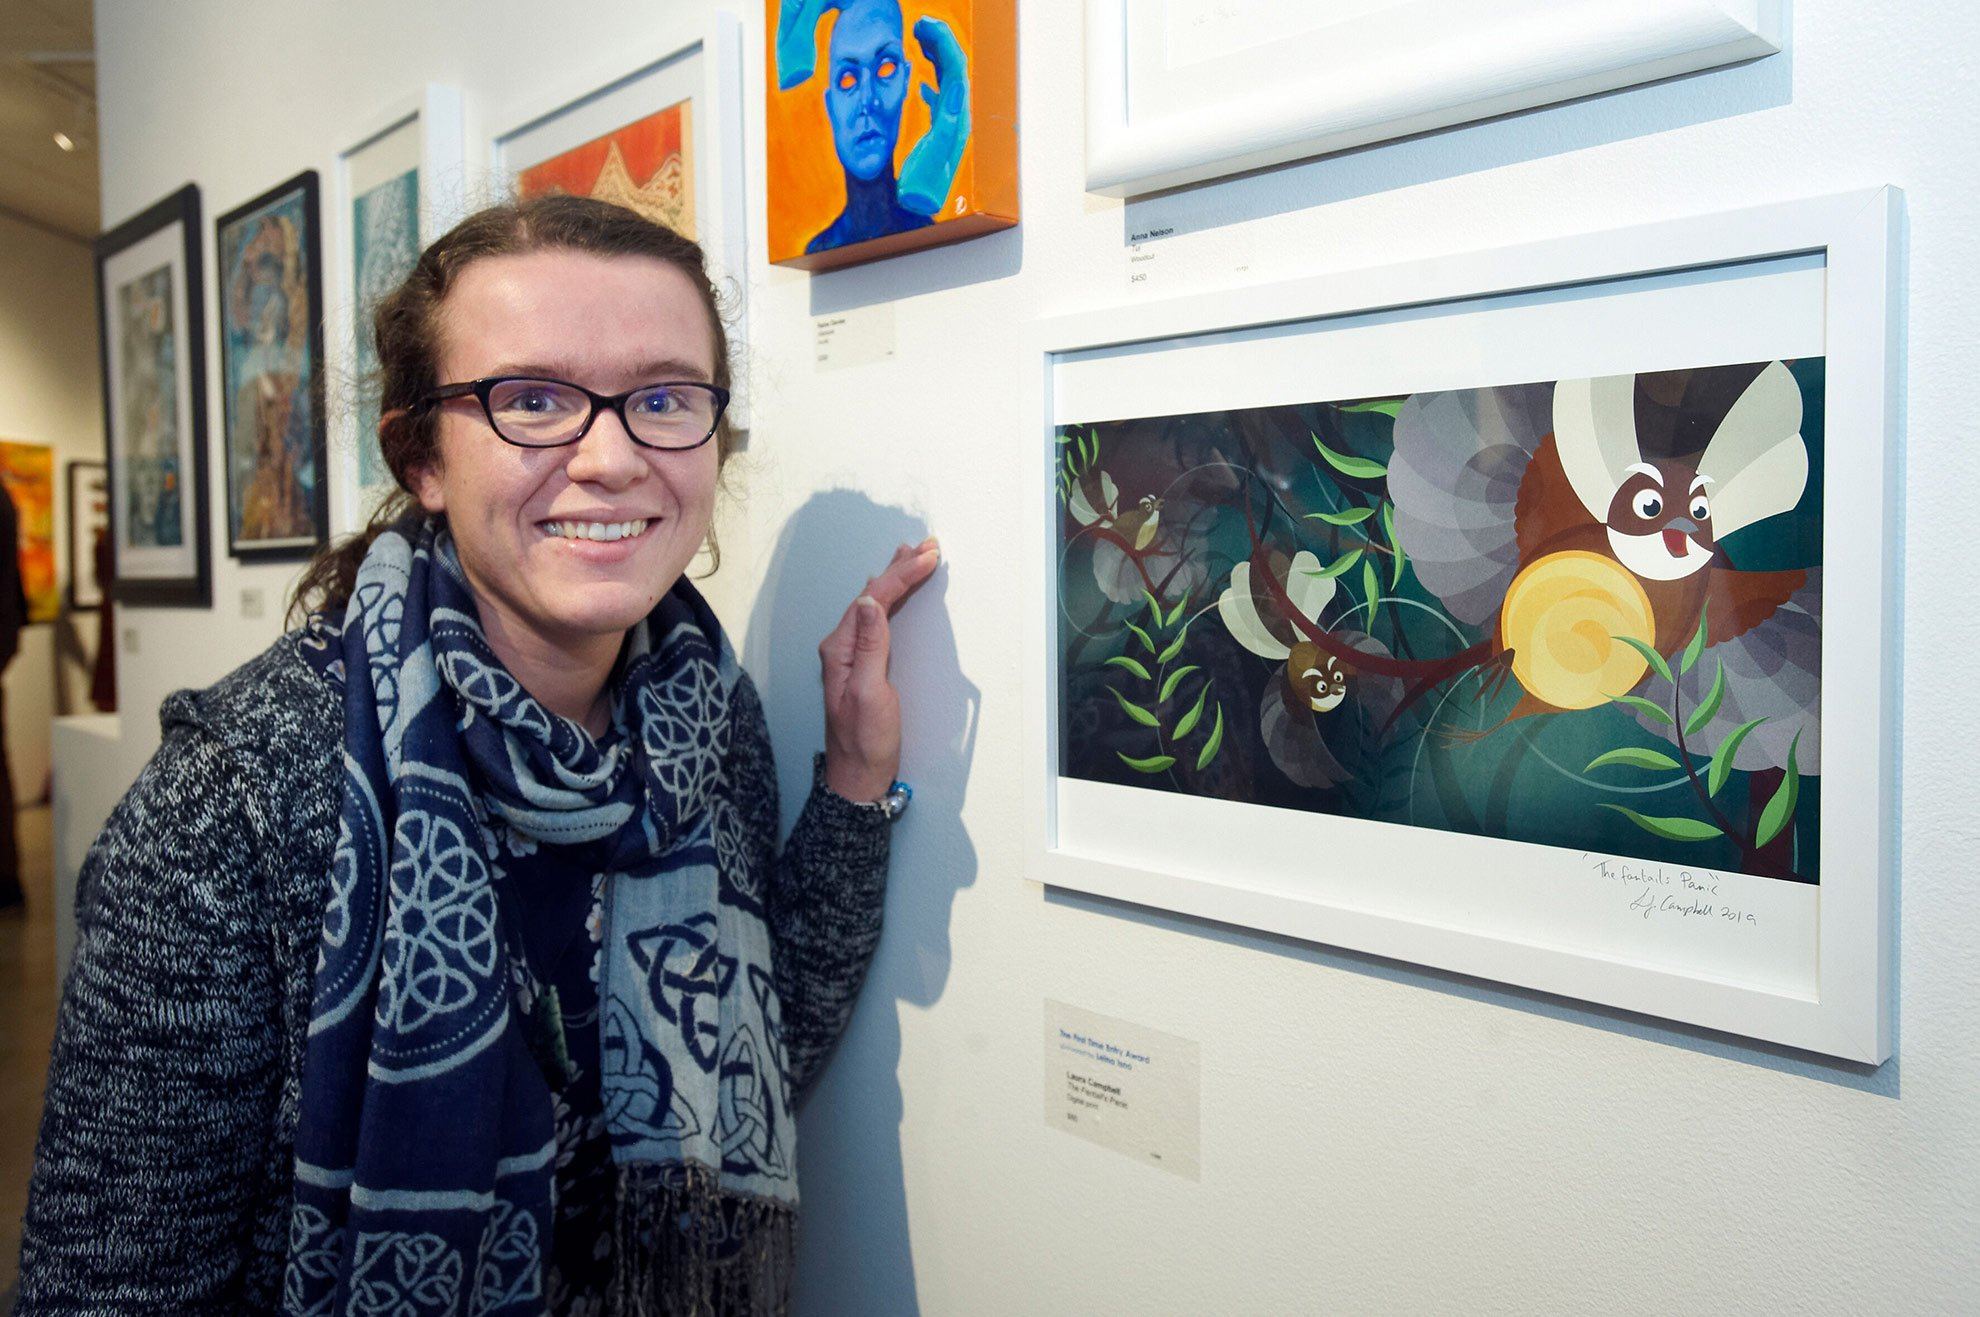 2019 Pātaka Friends Art Awards First Entry Award Winner Laura Campbell